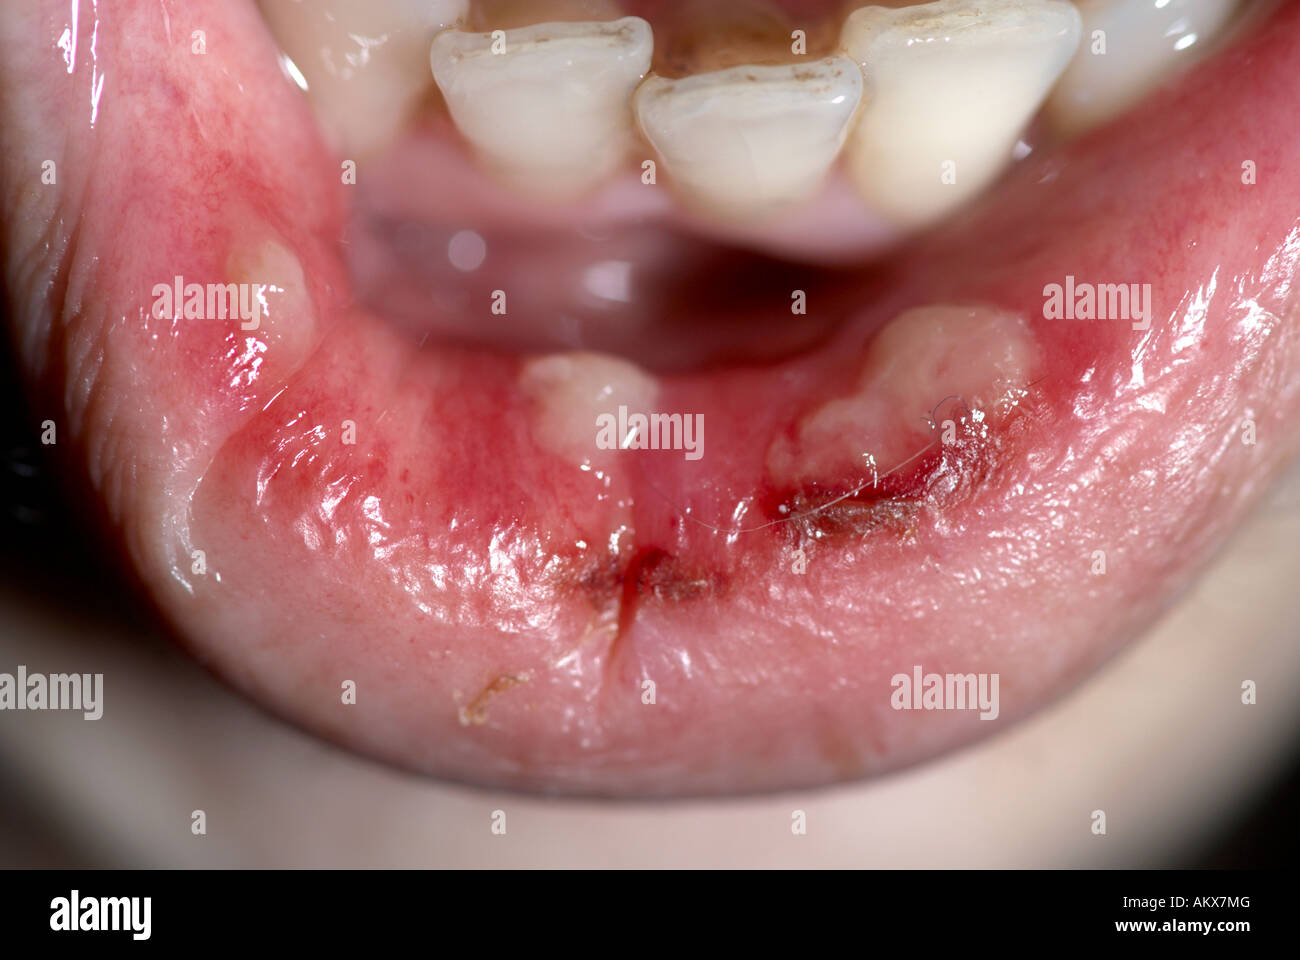 Mouth Ulcers Stock Photos & Mouth Ulcers Stock Images - Alamy